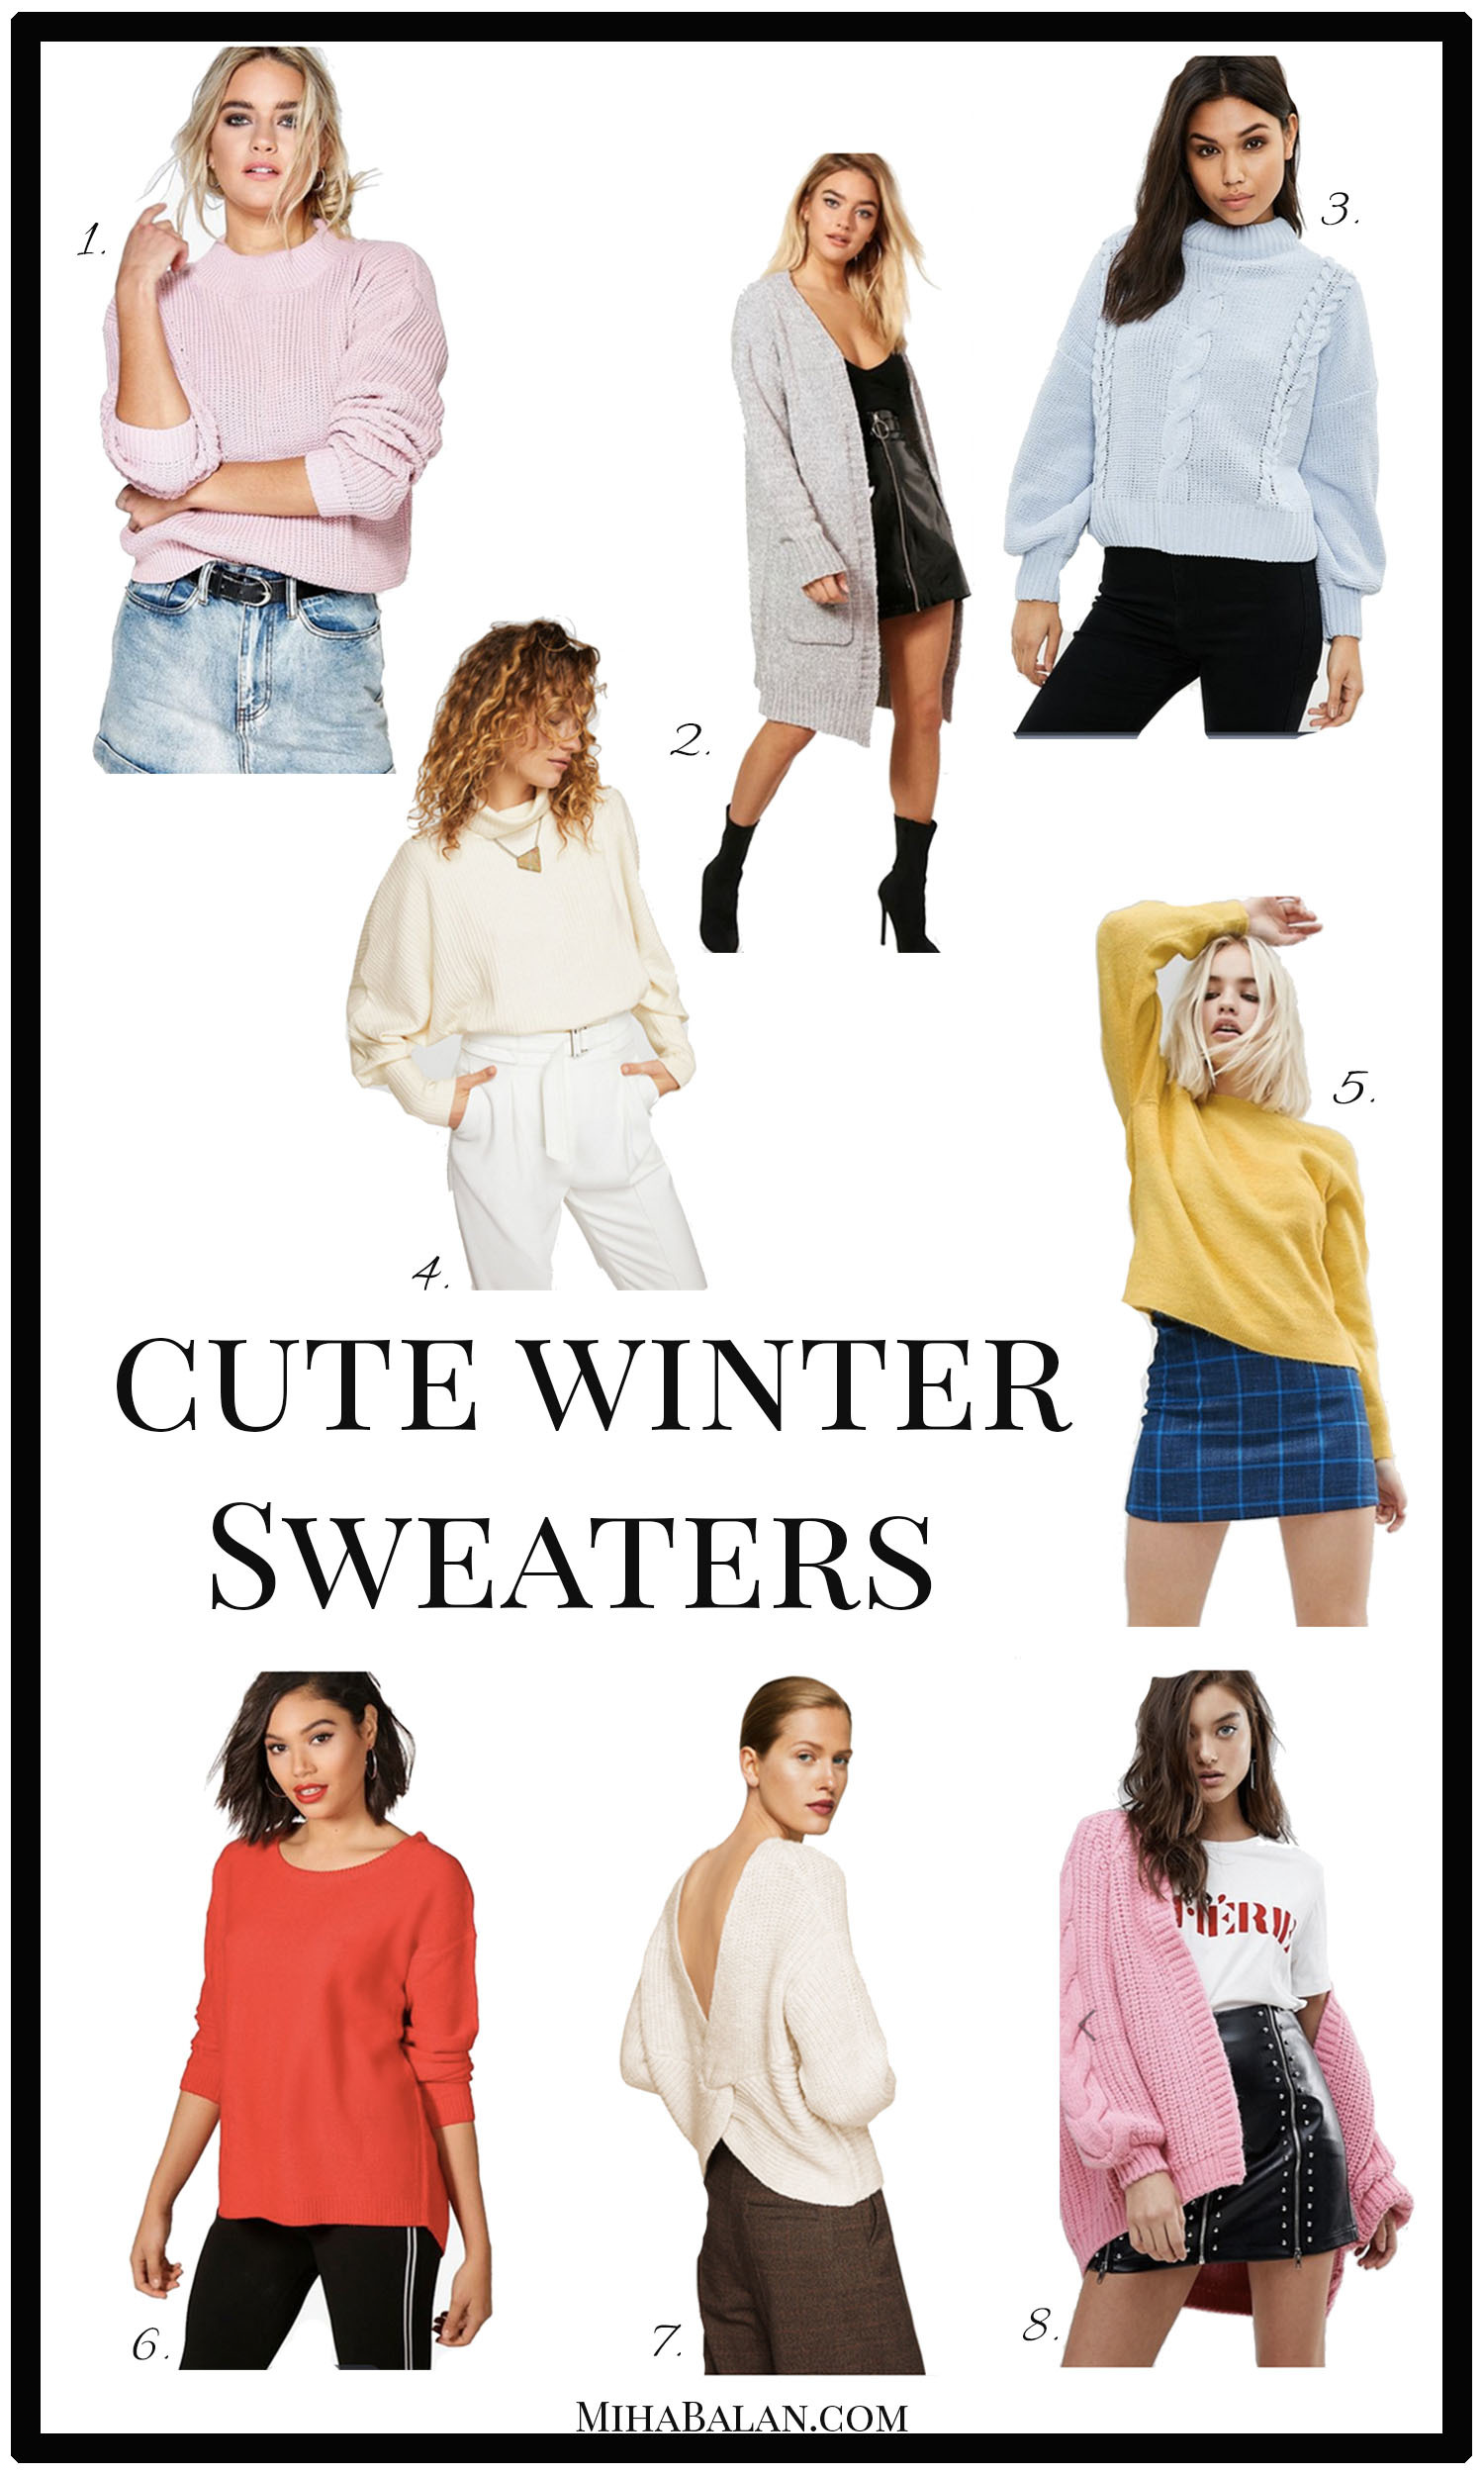 winter cute sweaters, knitwear, women sweaters, winter sweaters